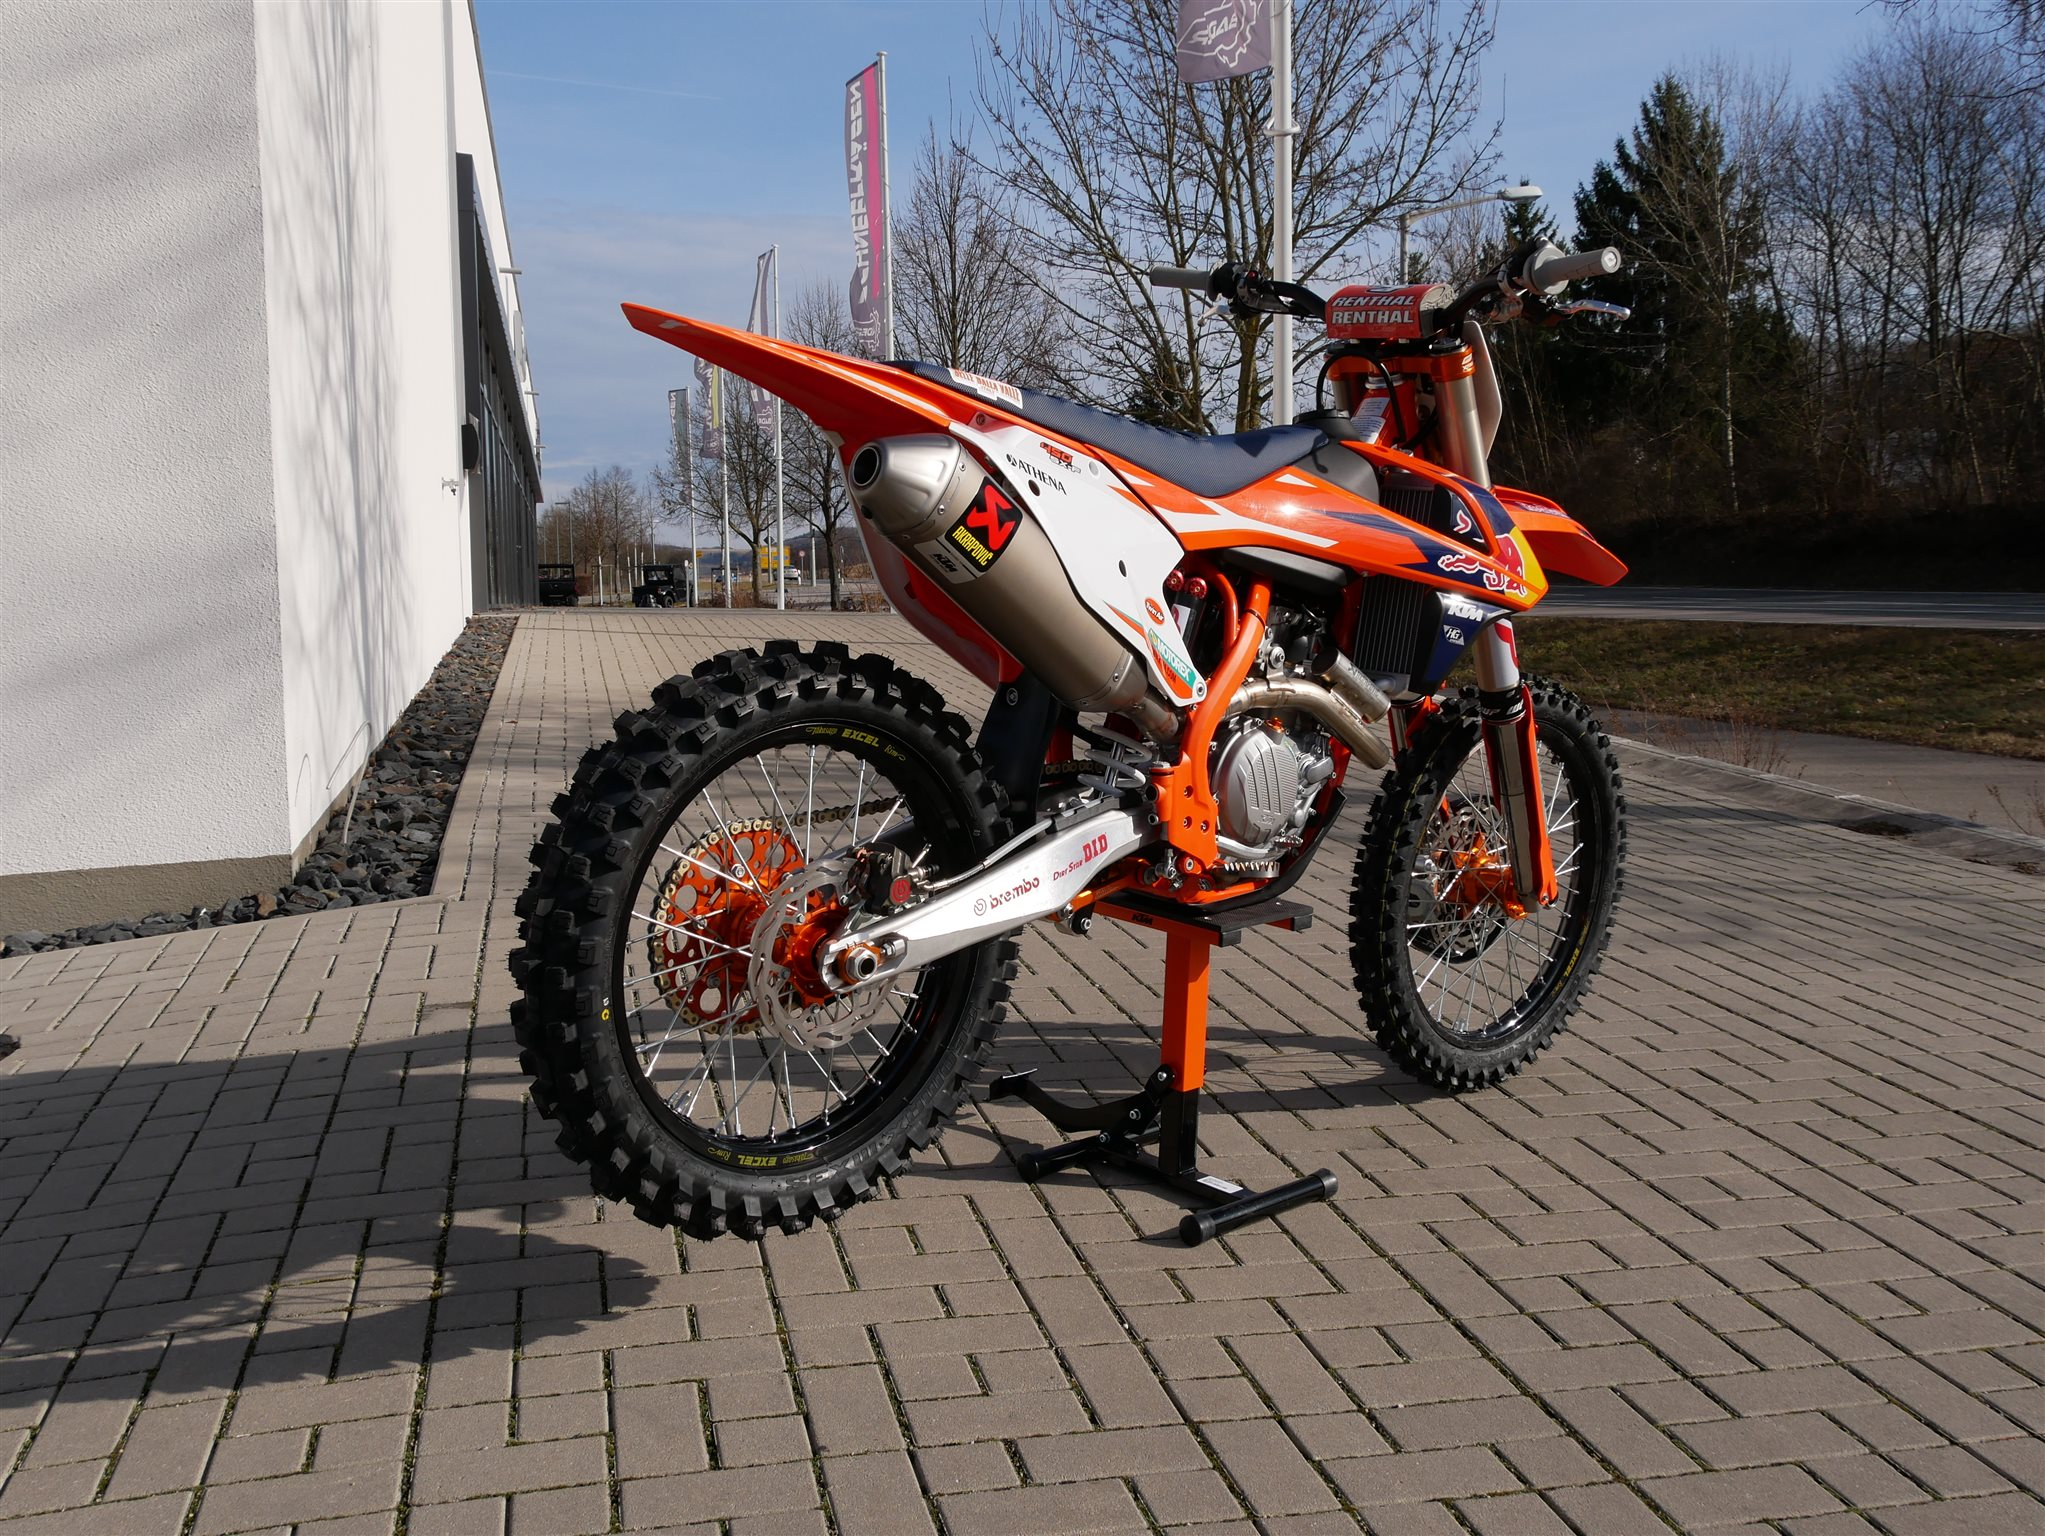 umgebautes motorrad ktm 450 sx f von ktm motoroox. Black Bedroom Furniture Sets. Home Design Ideas